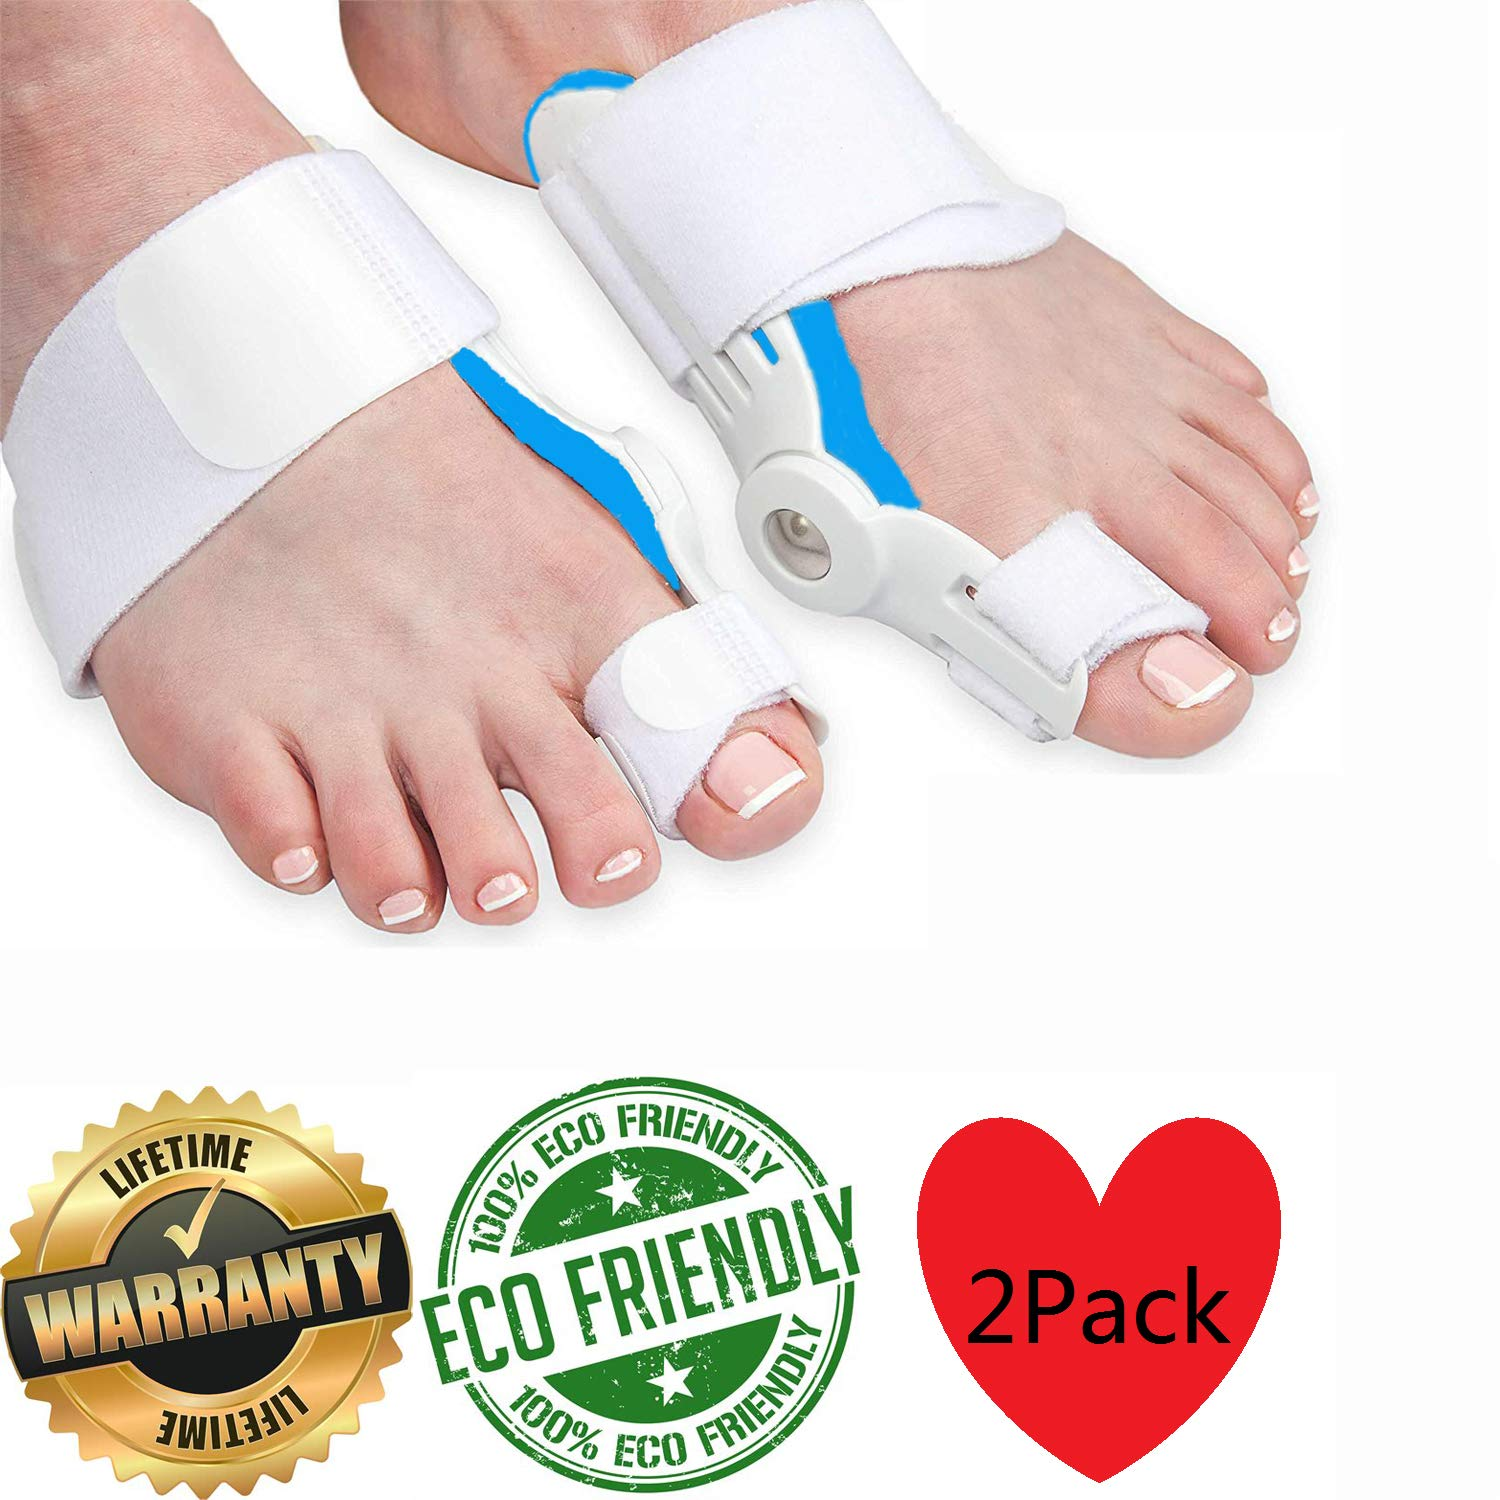 Bunion Corrector and Bunion Relief Bunion Splint with Soft Silicone Pad- Bunion Pads for Men and Women Hammer Toe Straightener and Bunion Protector Cushions - Relieve Hallux Valgus Foot Pain (1 Pair)